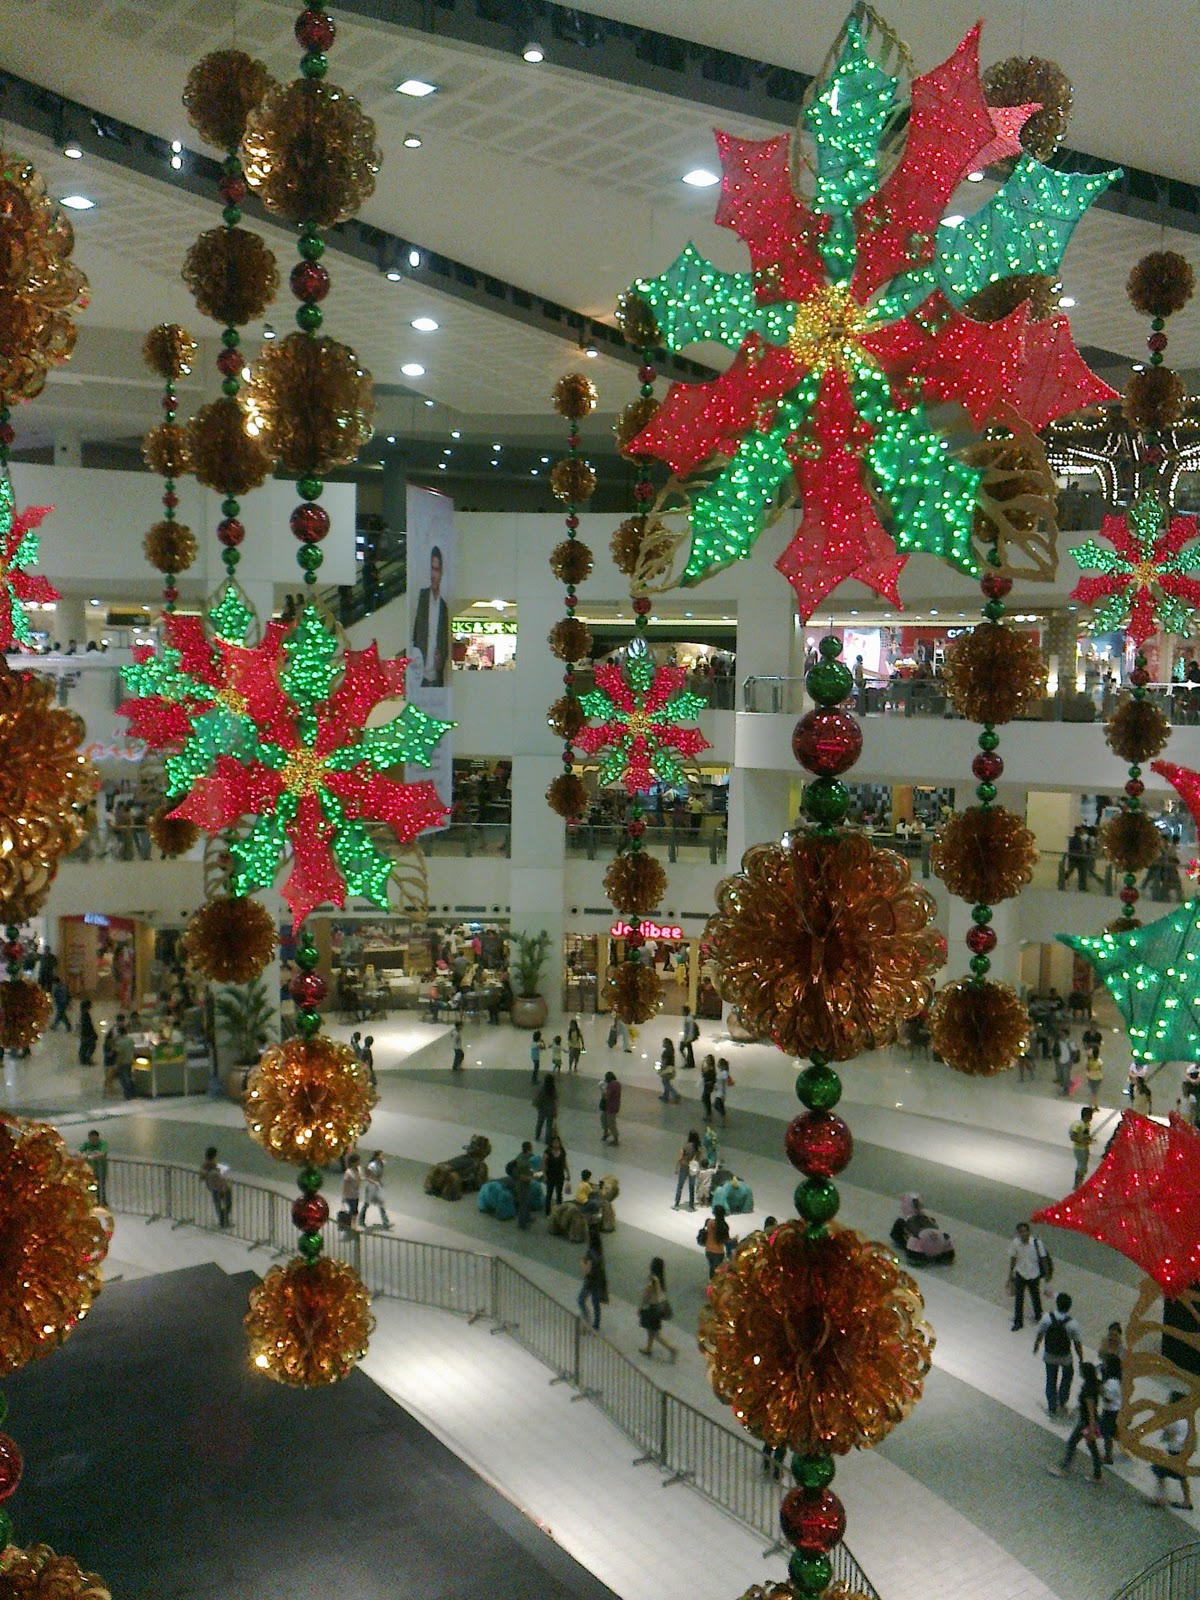 Scant Christmas Decorations in Shopping Malls |Before the ...